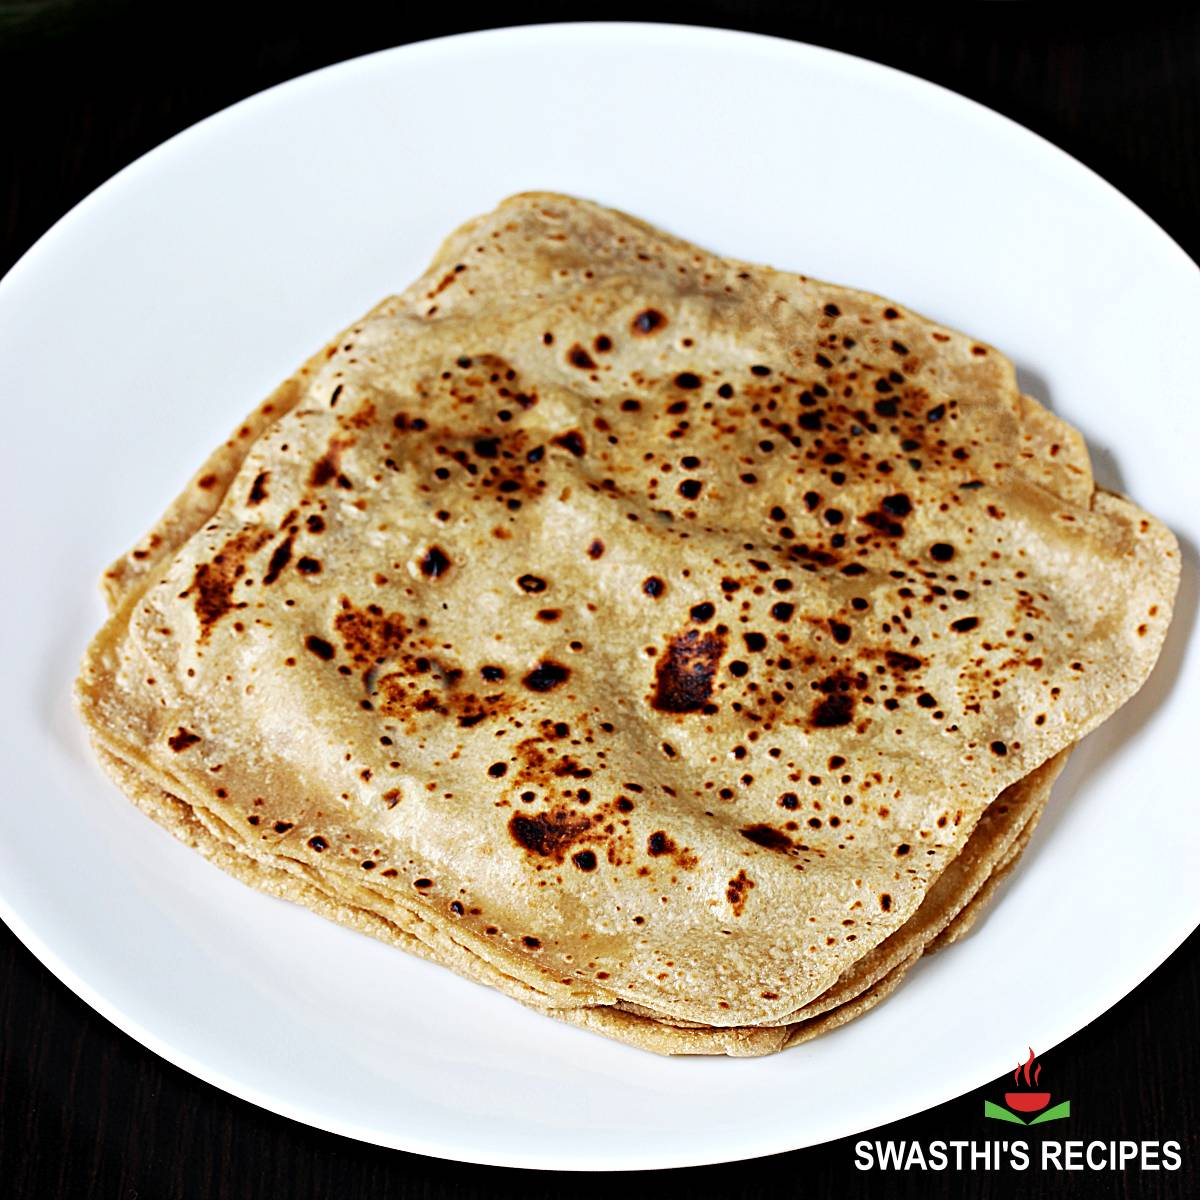 paratha recipe with whole wheat flour, salt and water